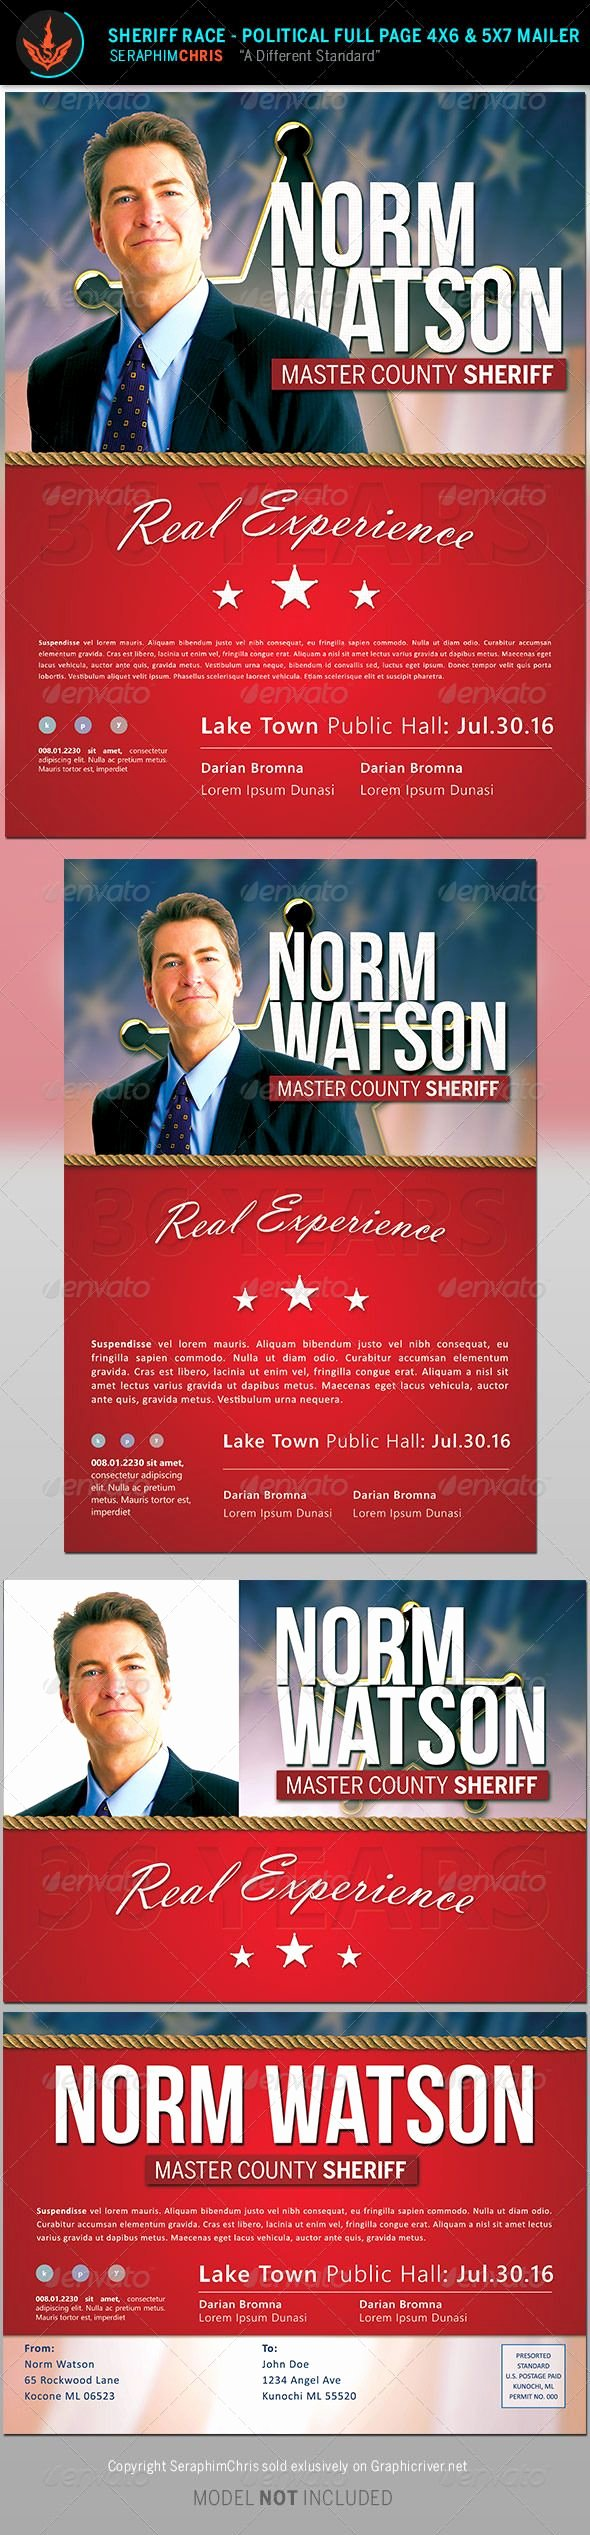 Political Mailers Template Unique Sheriff Race Political Flyer and Mailer Template